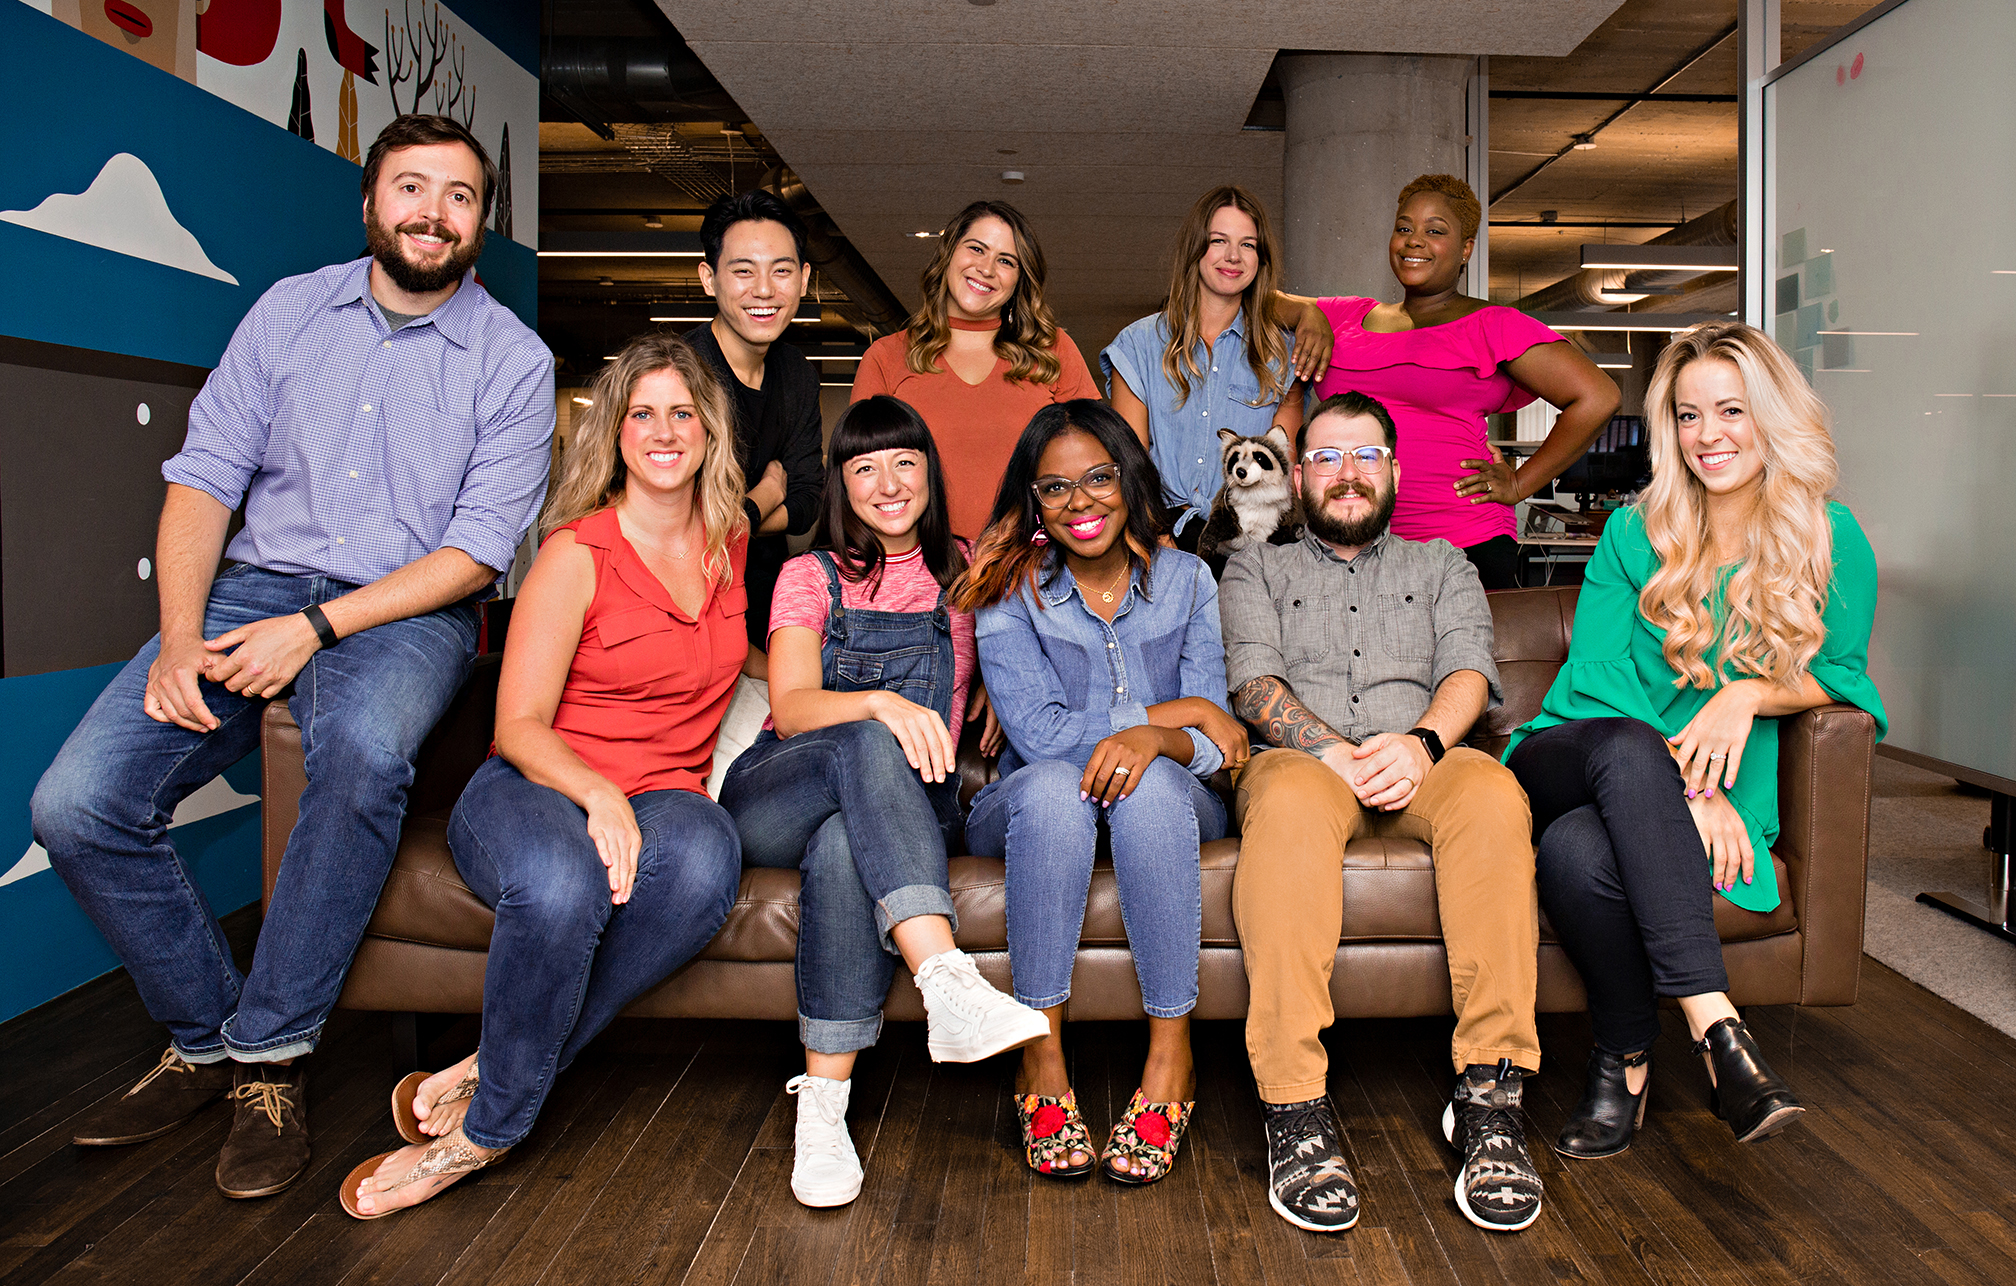 How MailChimp Does Recruiting